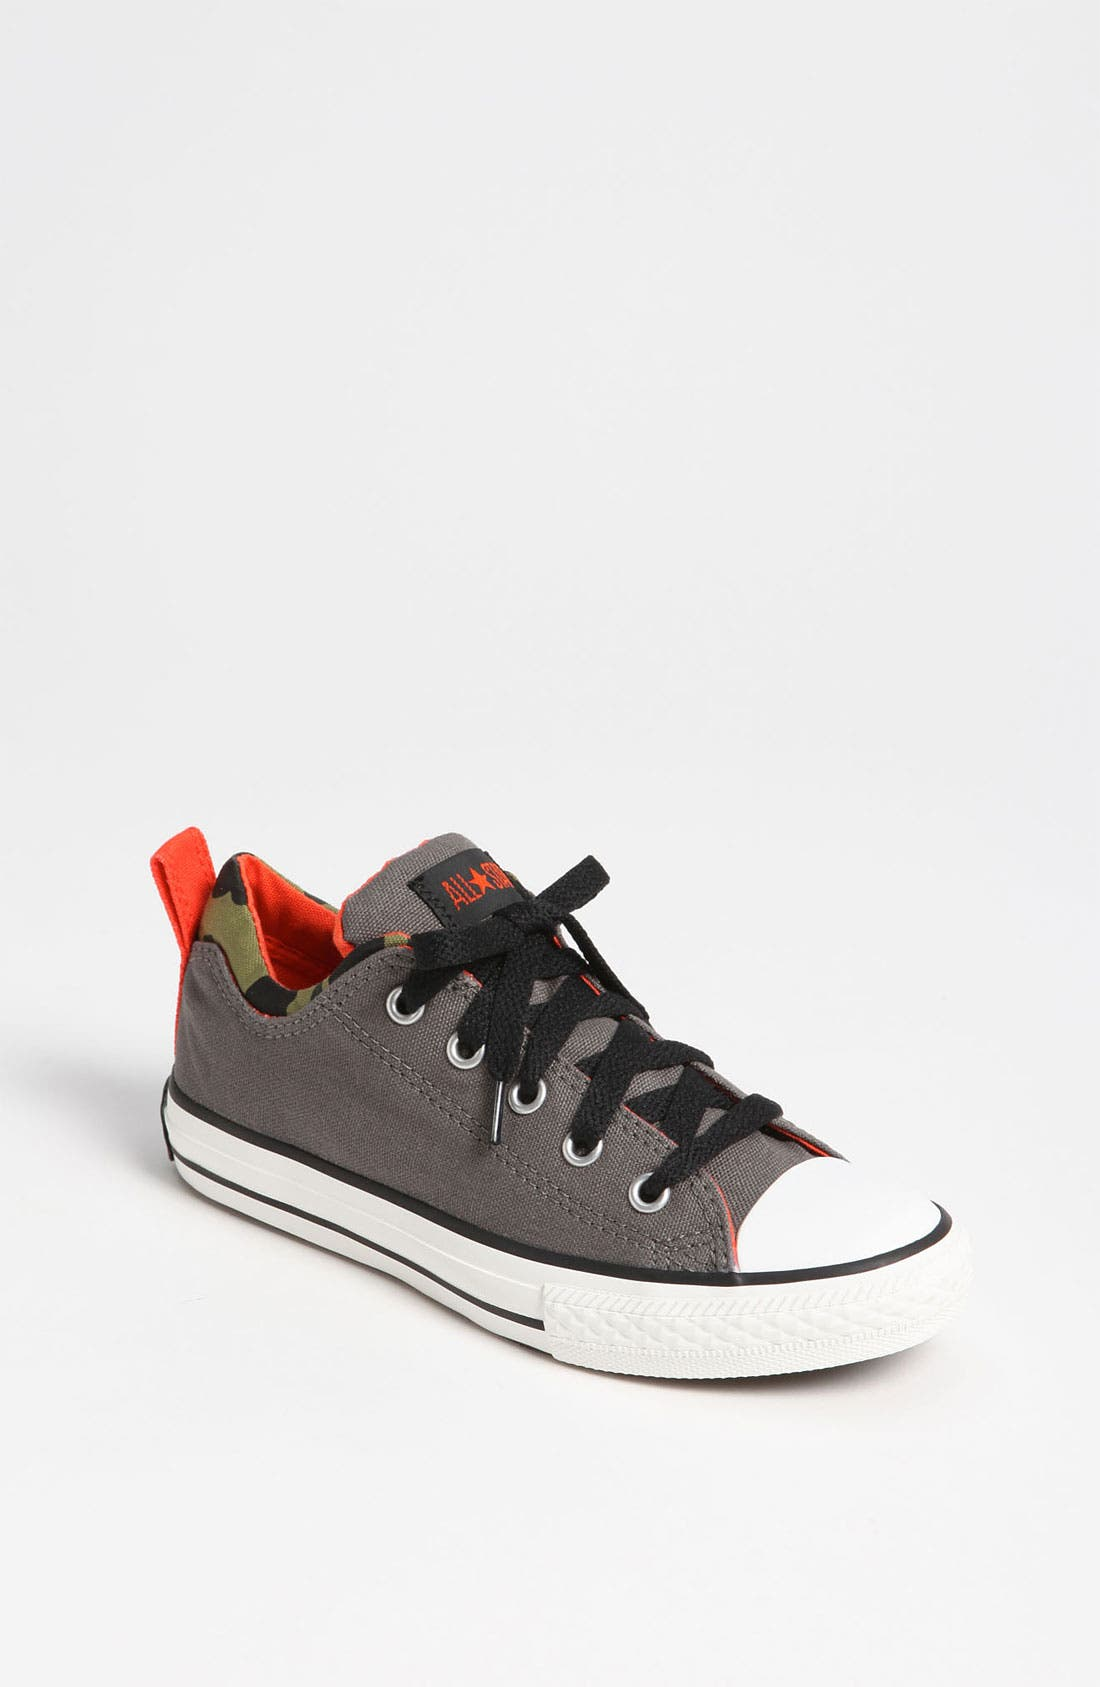 Alternate Image 1 Selected - Converse Chuck Taylor® Dual Collar Sneaker (Toddler, Little Kid & Big Kid)